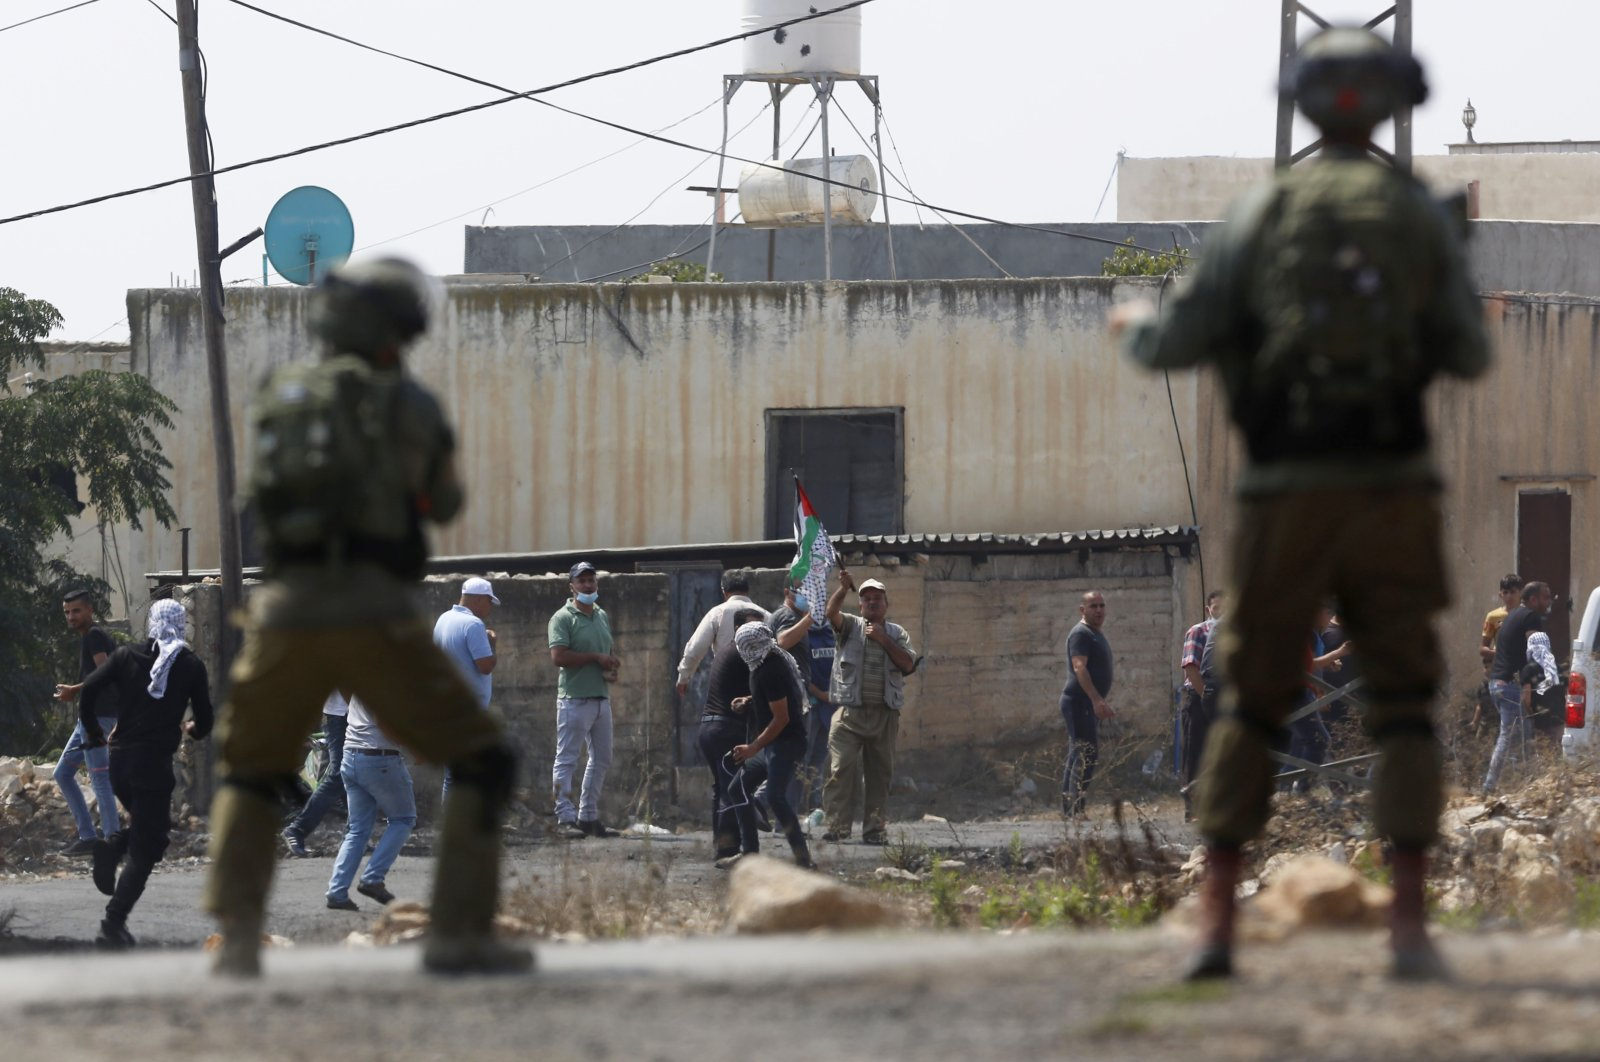 Israeli troops clash with the Palestinian demonstrators following a weekly demonstration against Israeli Jewish settlements, in the West Bank, Sept. 4, 2020. (AP Photo)